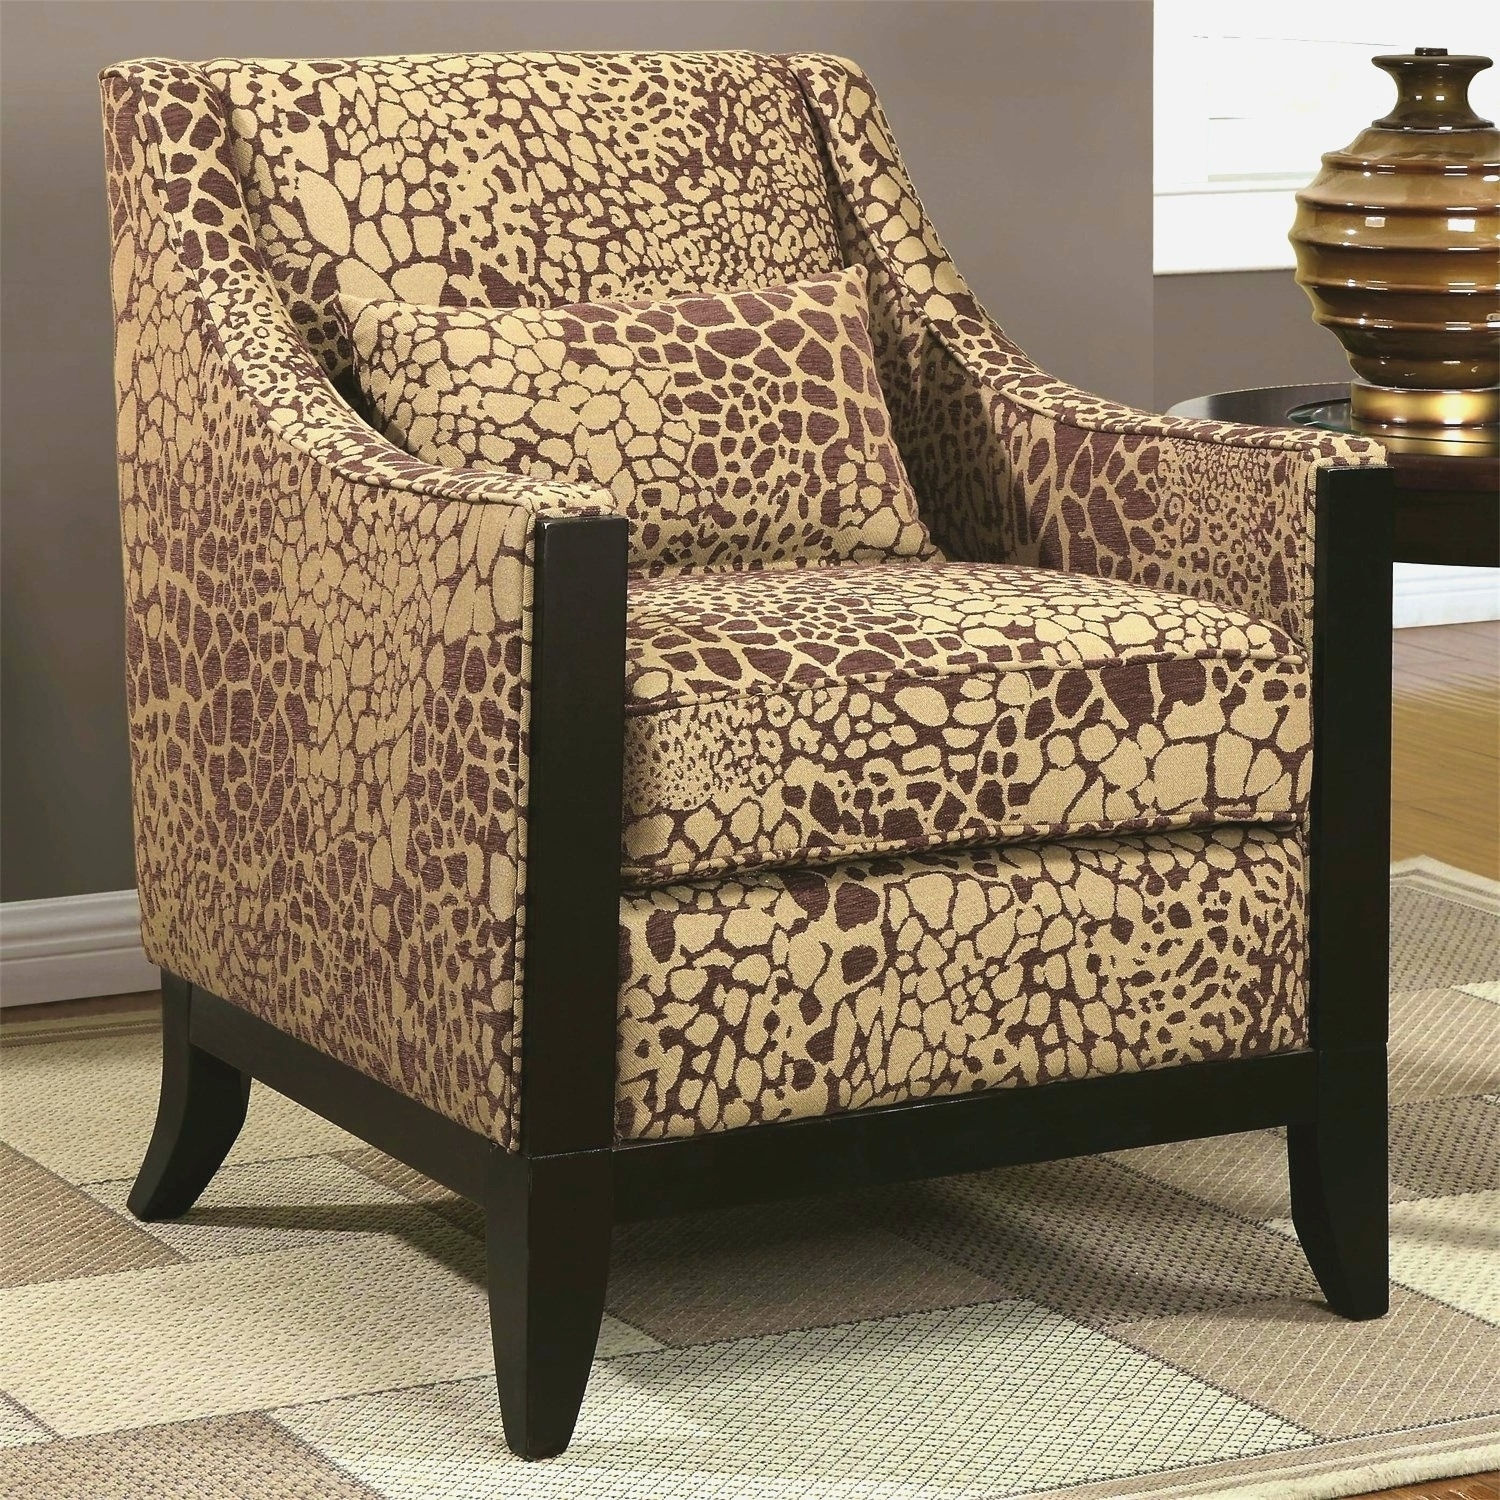 Leopard Print Chaise Lounge Chair • Lounge Chairs Ideas With Most Up To Date Zebra Print Chaise Lounge Chairs (View 5 of 15)